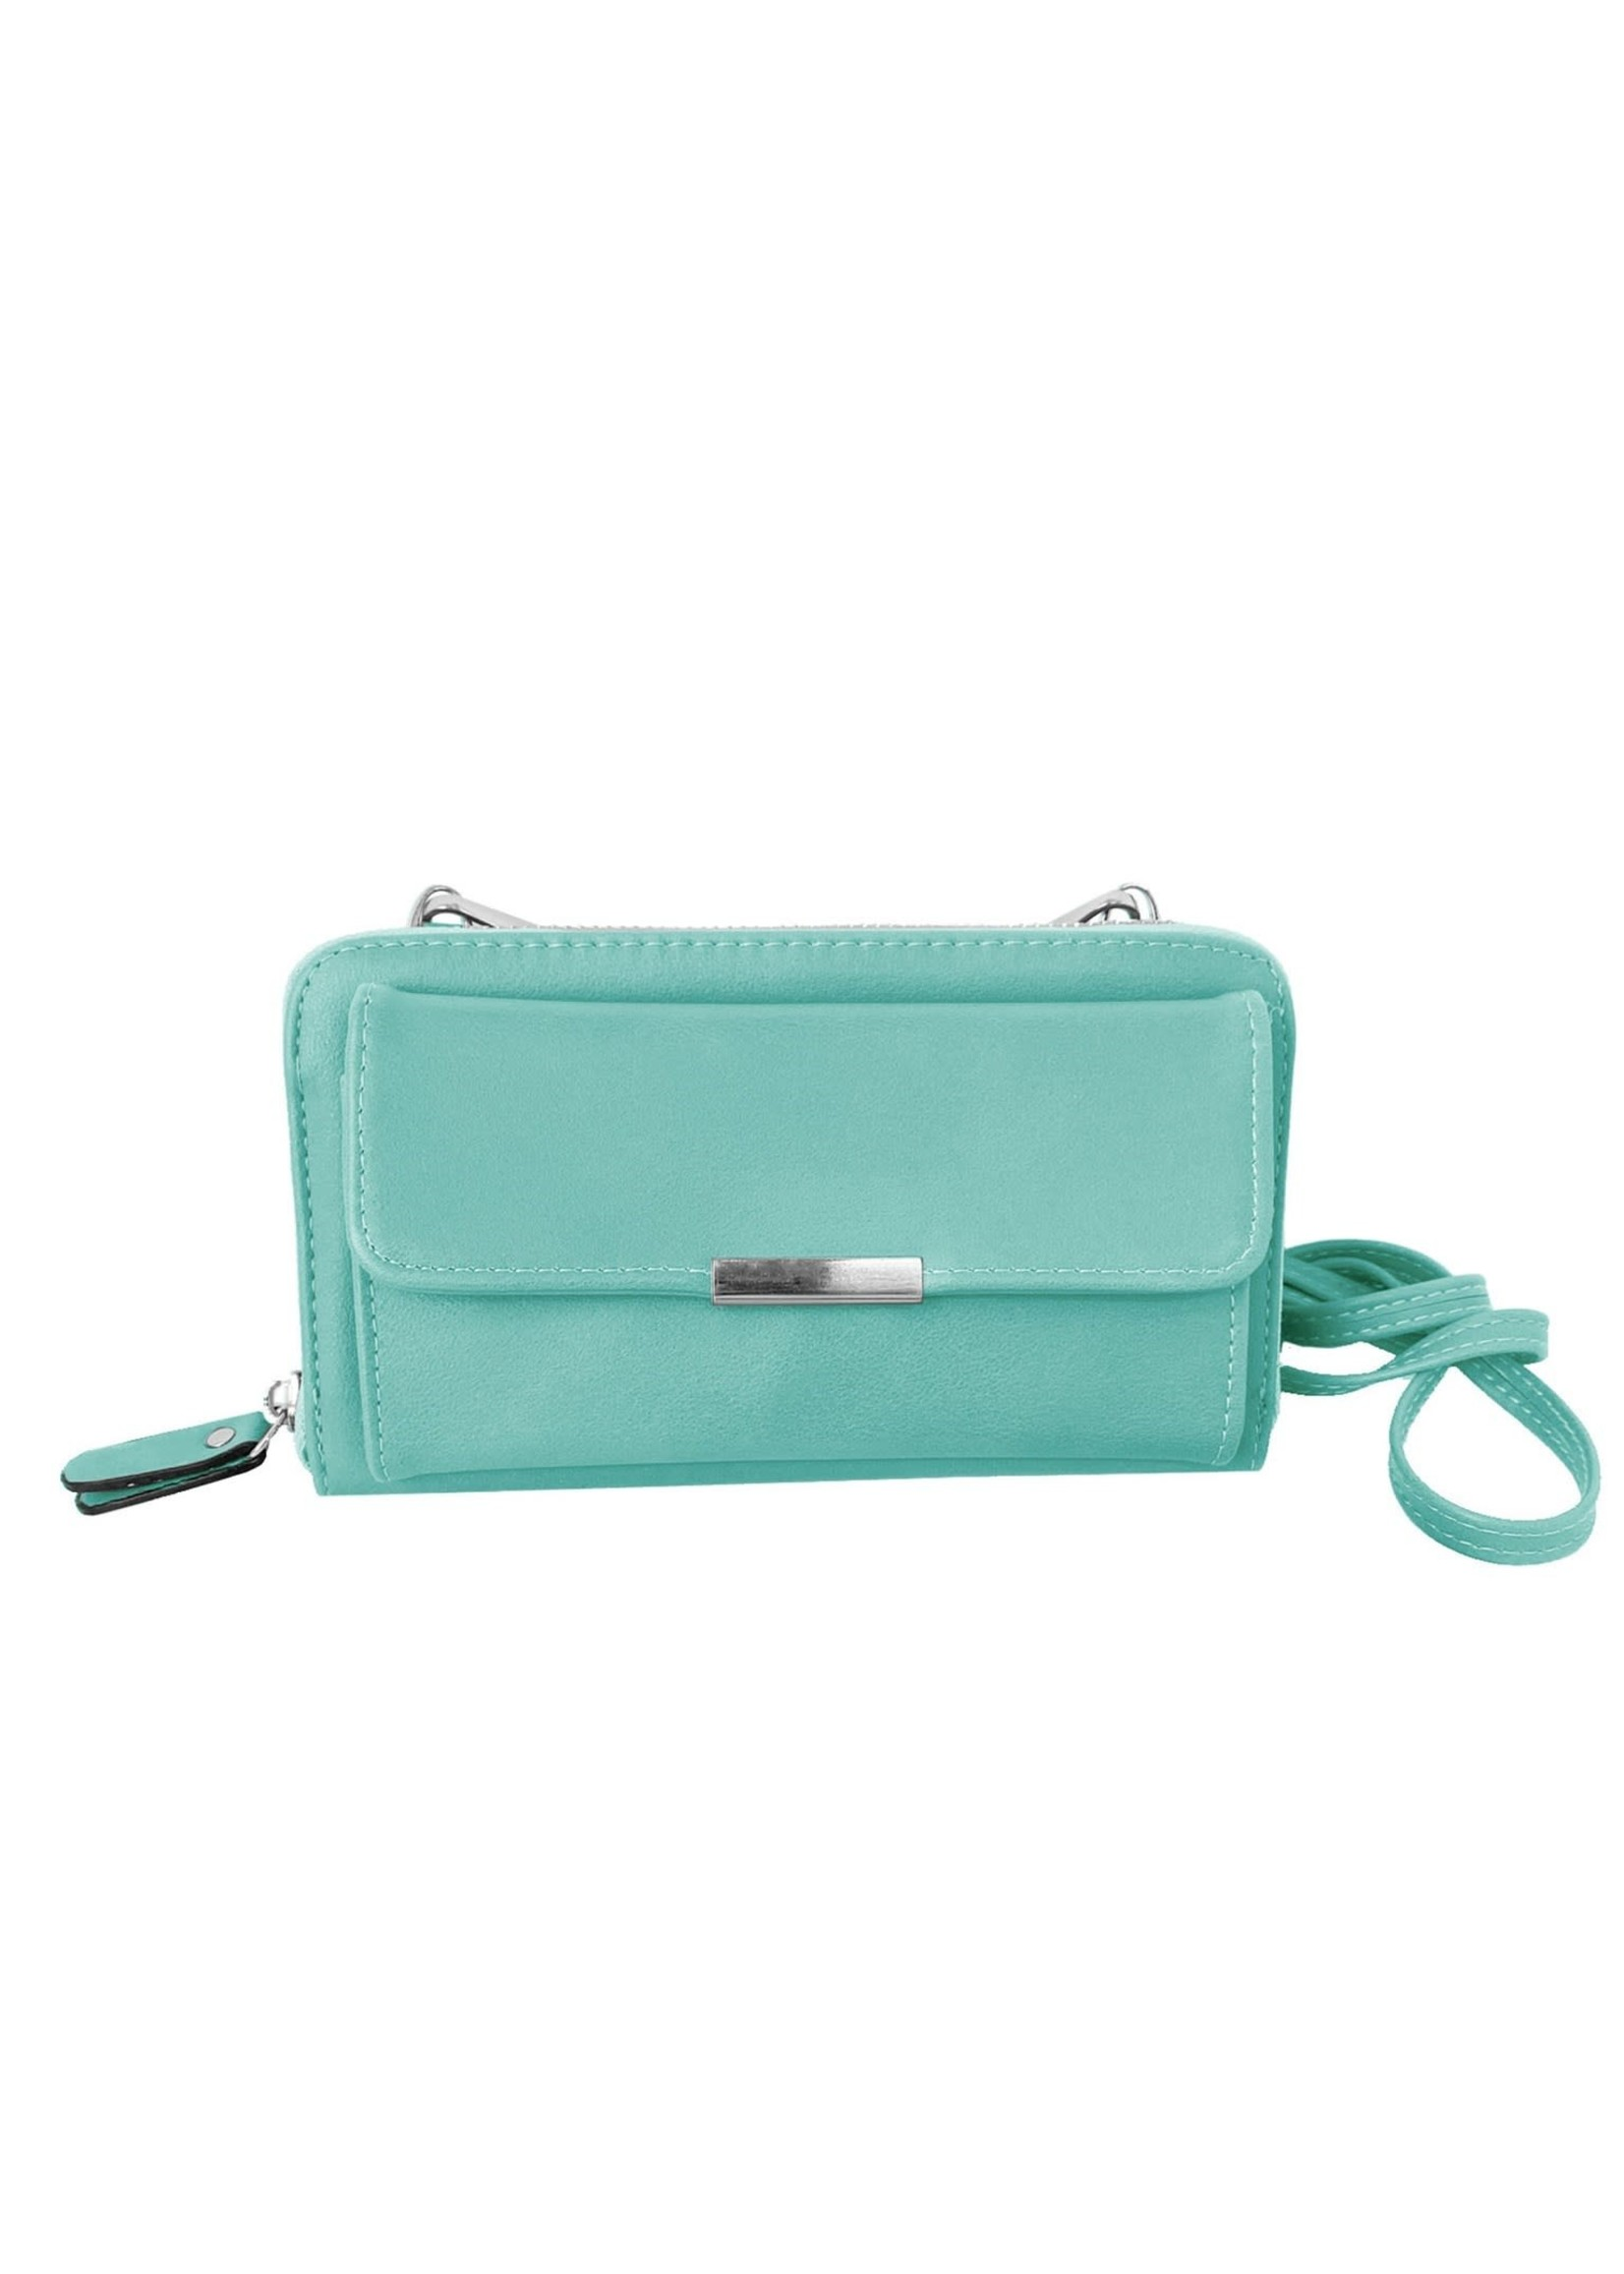 Caracol Turquoise 2 in 1 Wallet/Purse